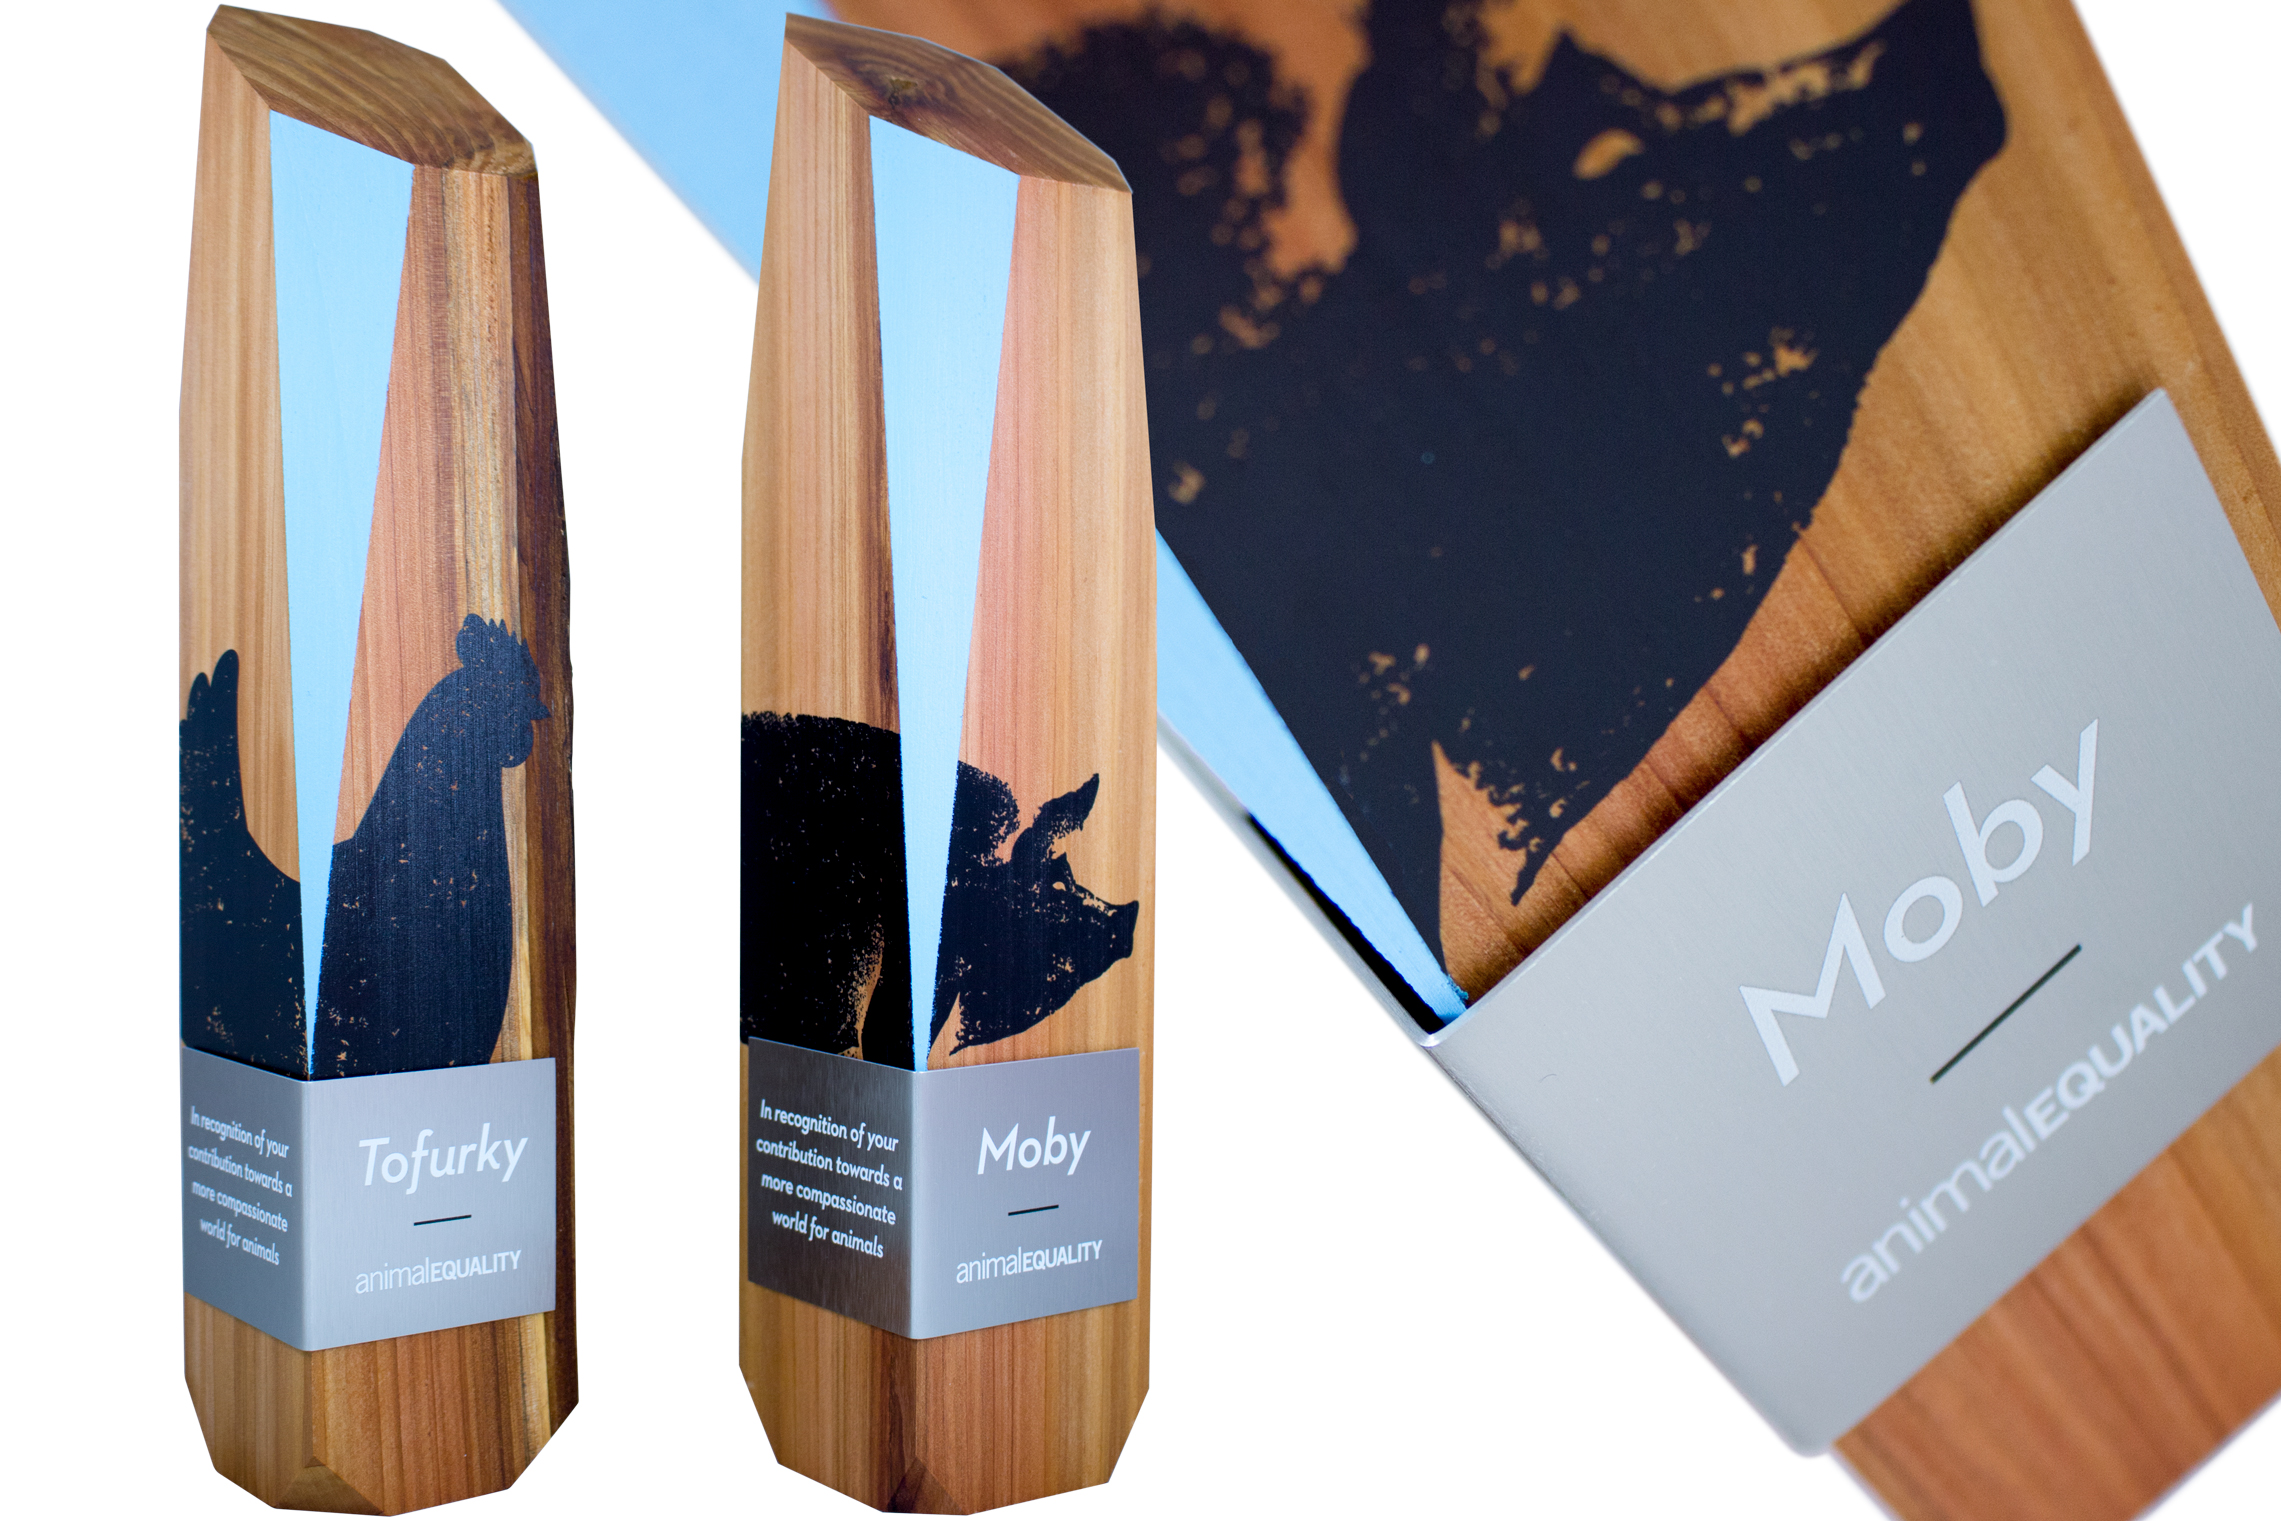 moby-animal-equality-award-trophy-eco-recovered-wood.jpg